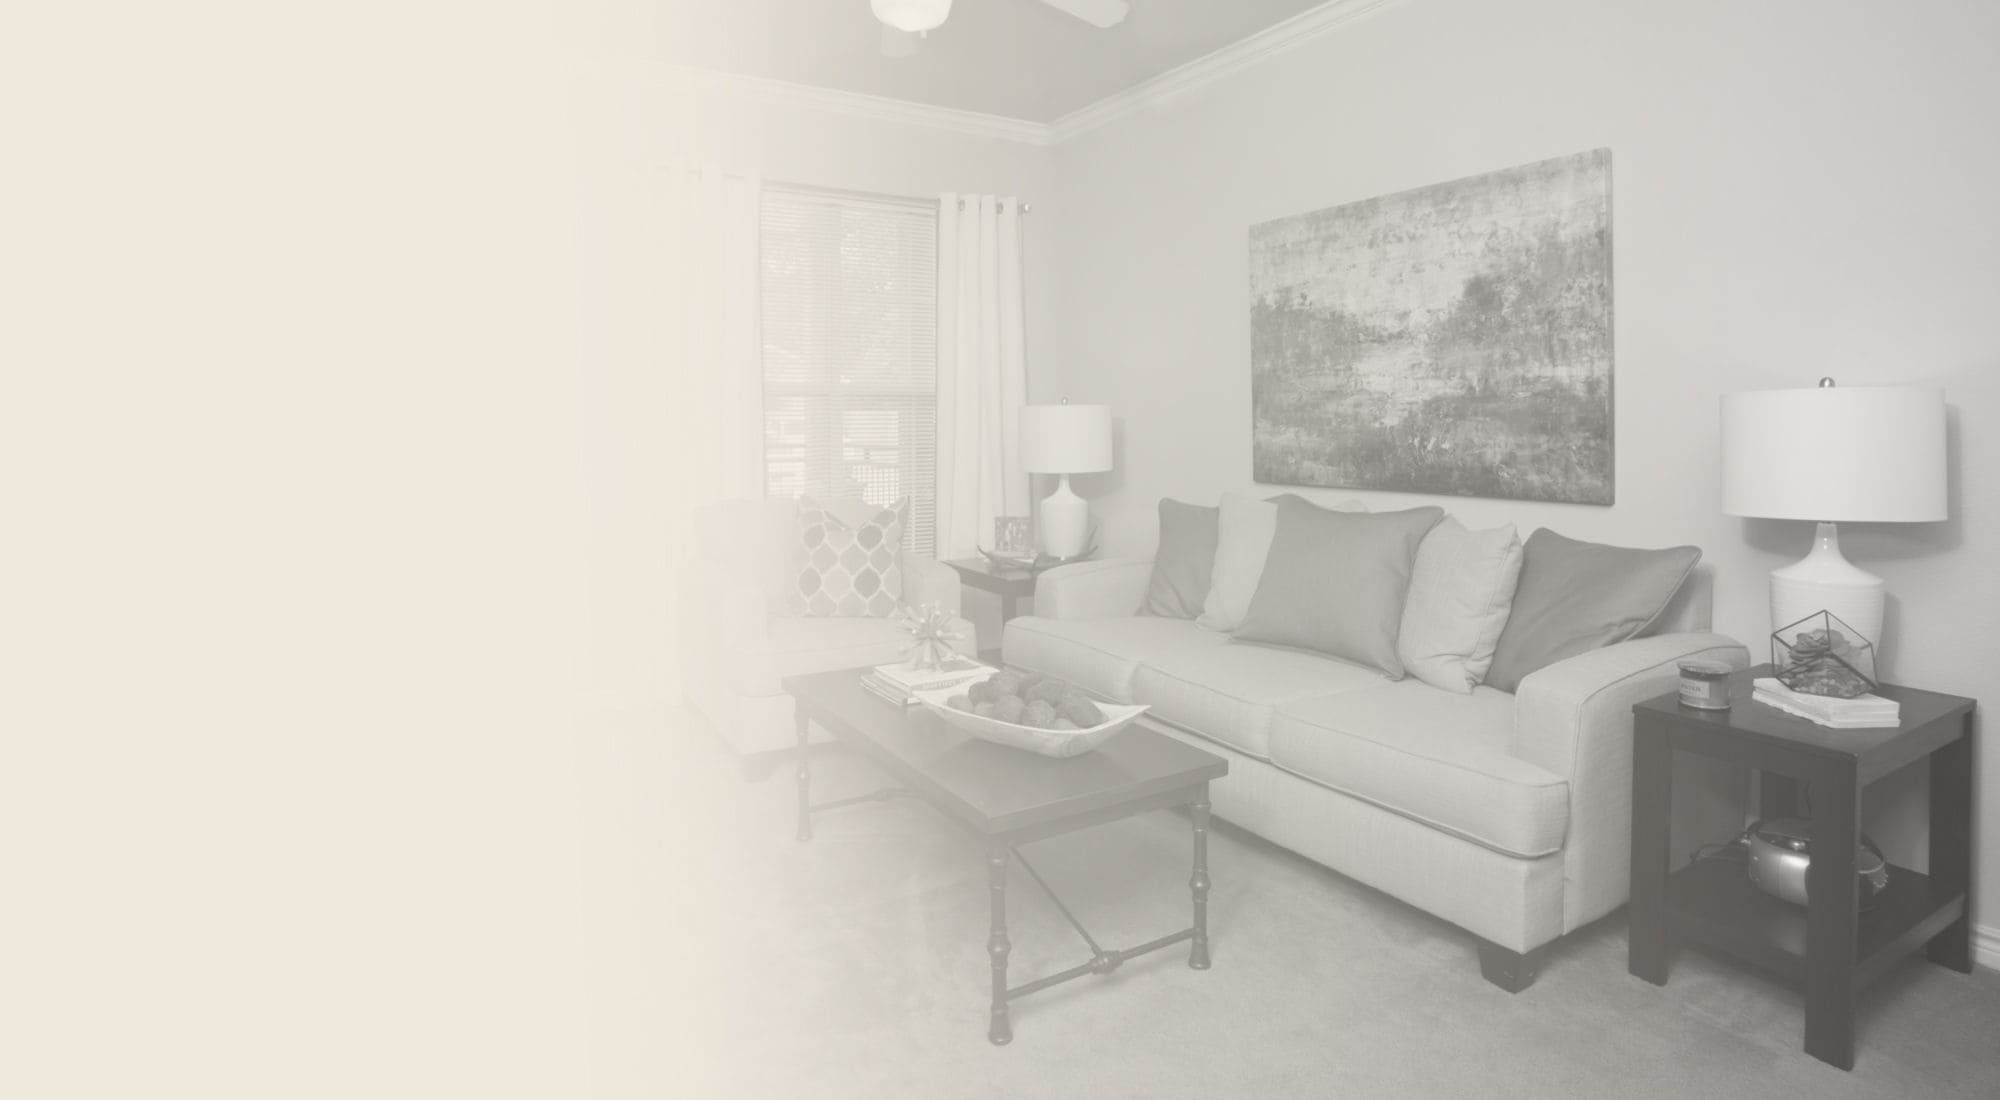 Southwest Lake Charles, LA Apartments for Rent in the Prien Lake